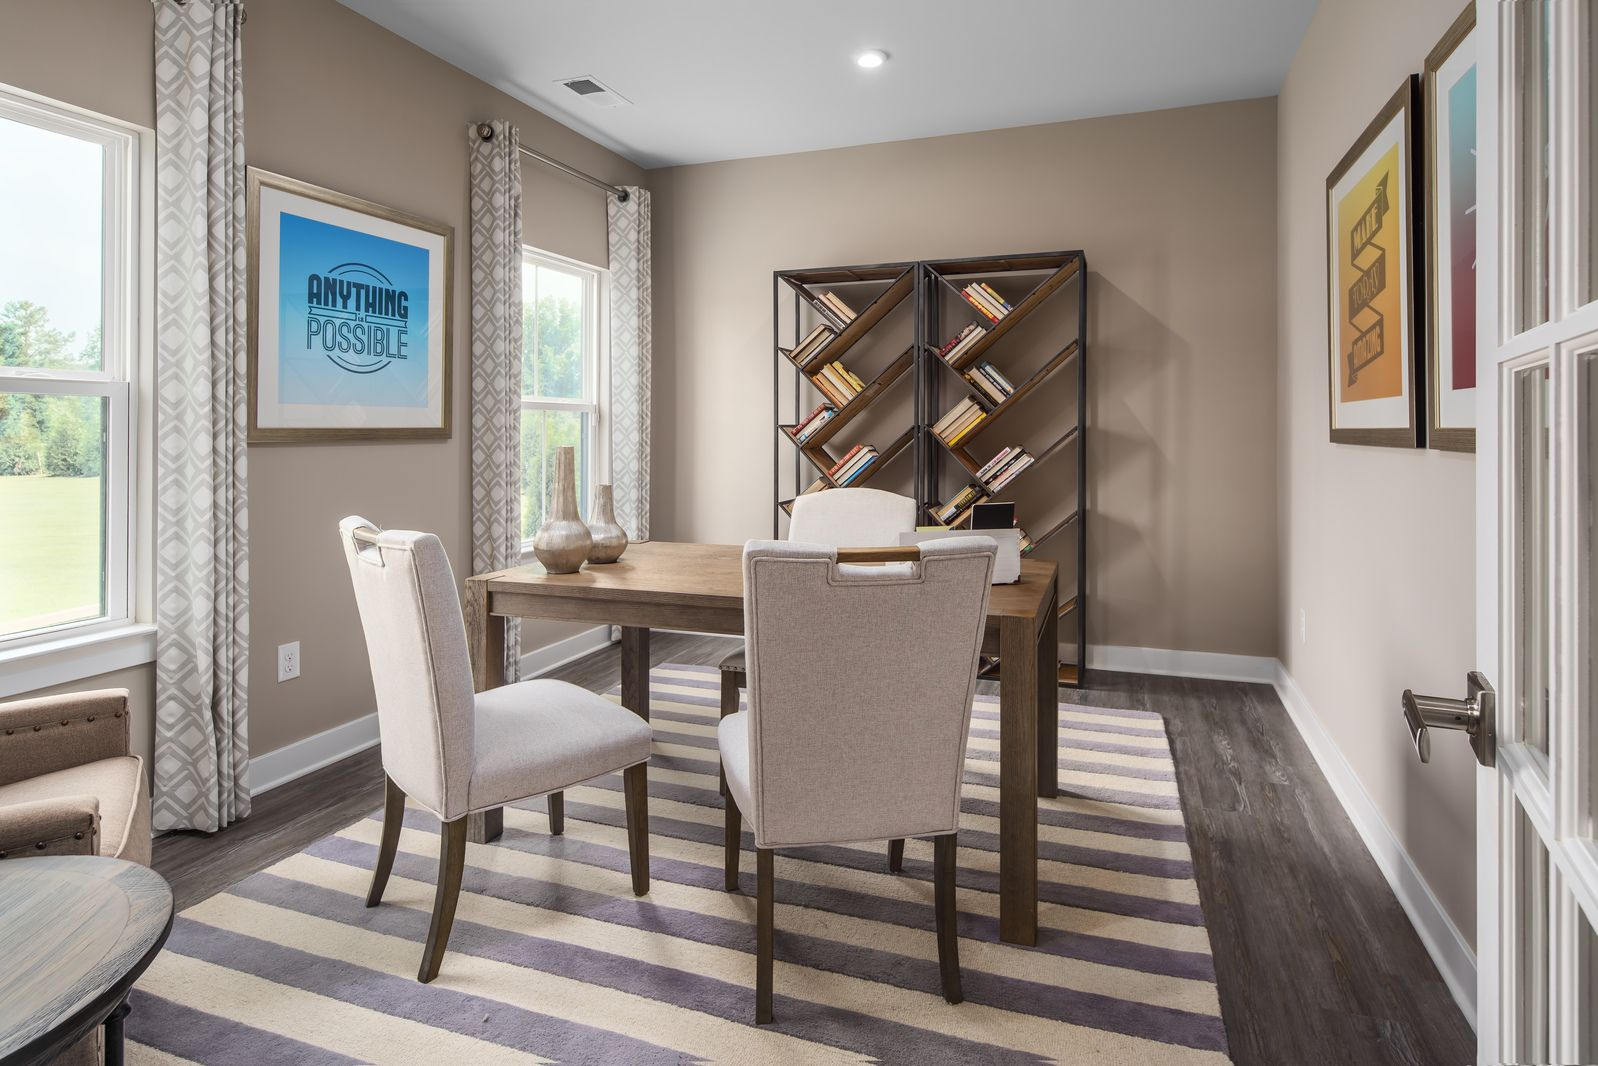 Kitchen featured in the Lehigh By Ryan Homes in Washington, MD